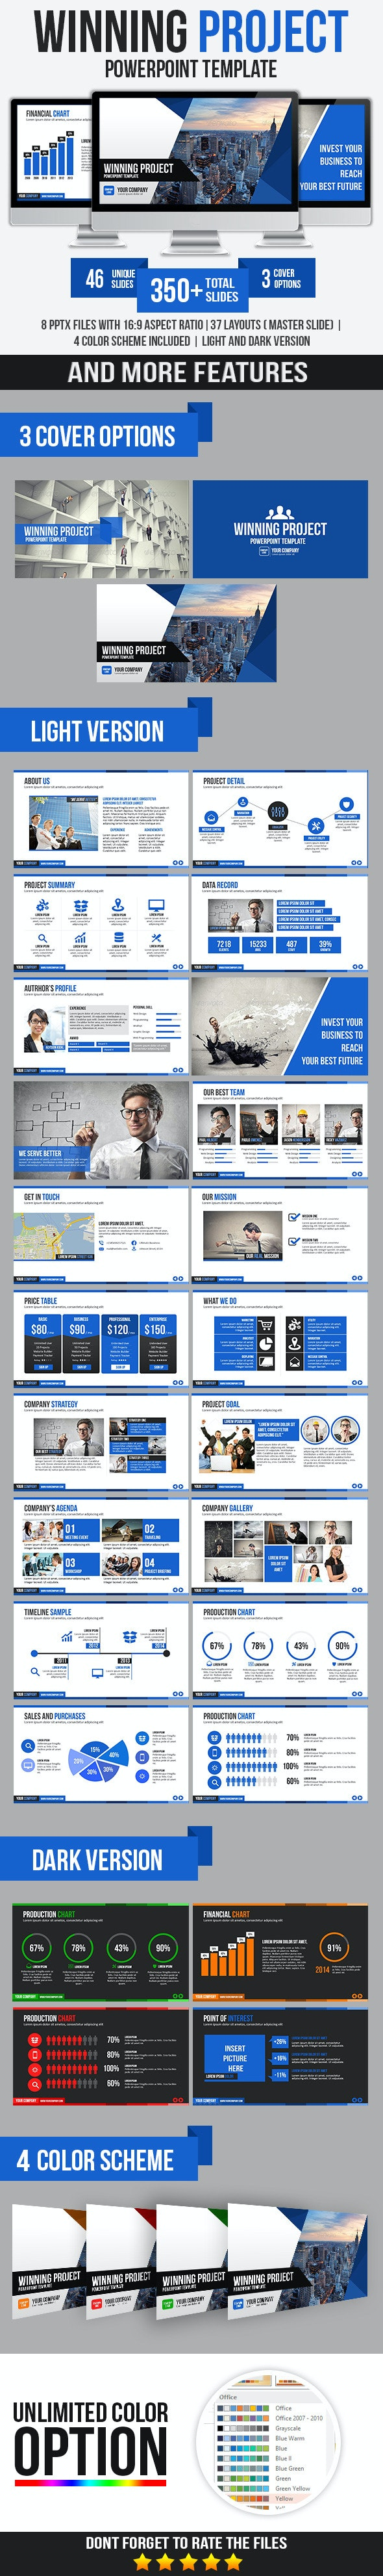 Winning Project PowerPoint Template - Business PowerPoint Templates